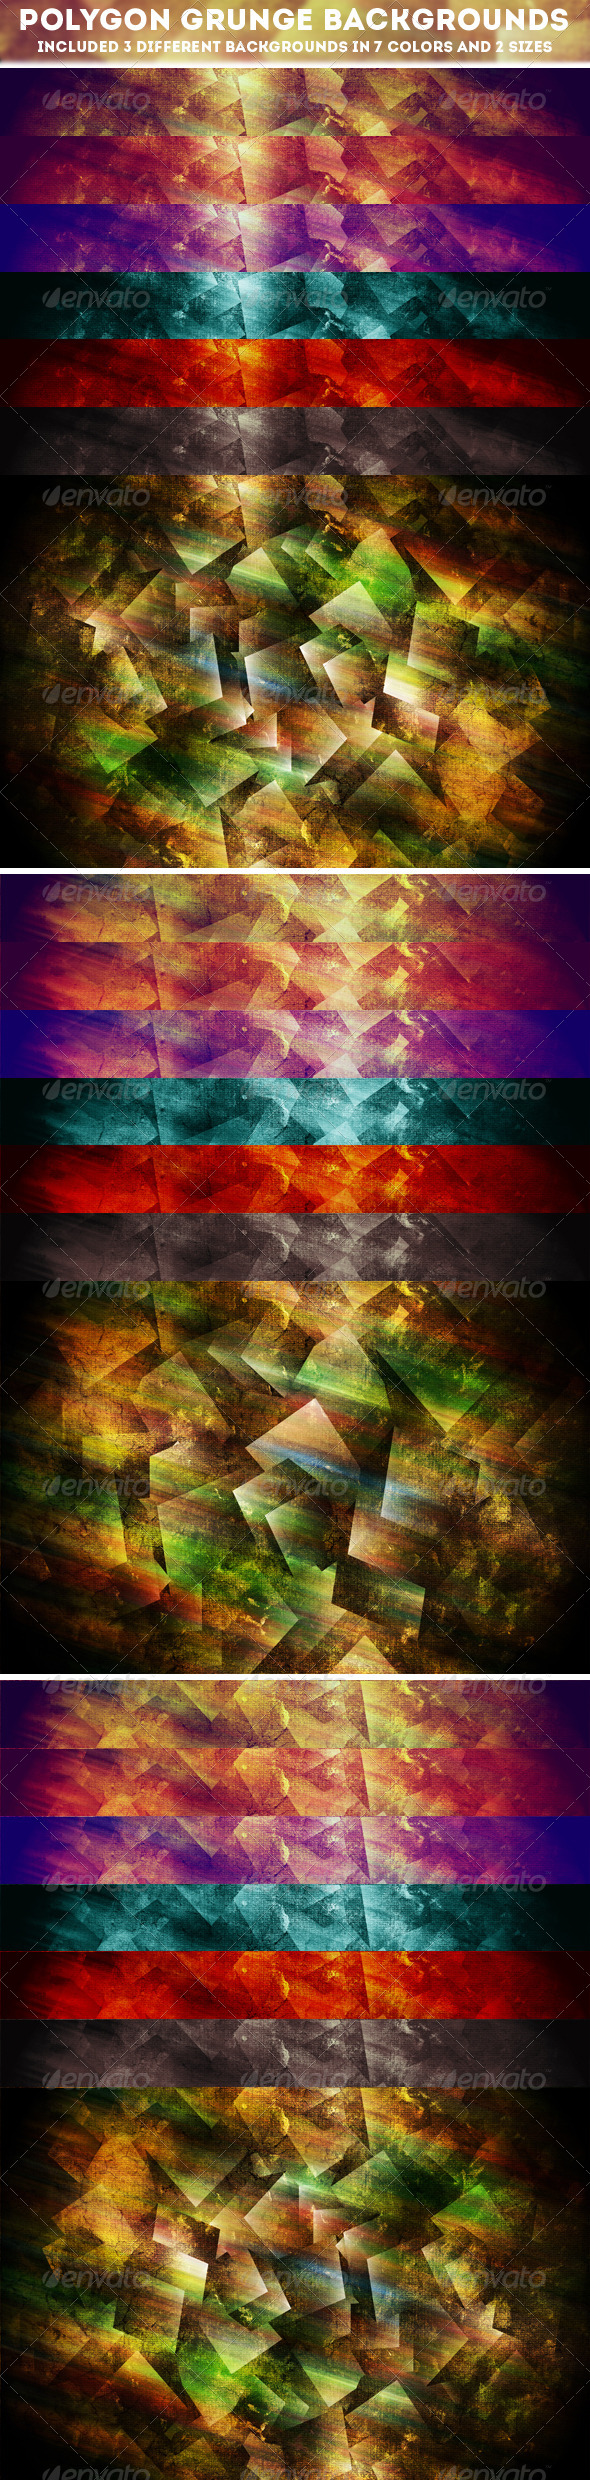 Polygon Grunge Backgrounds - Abstract Backgrounds